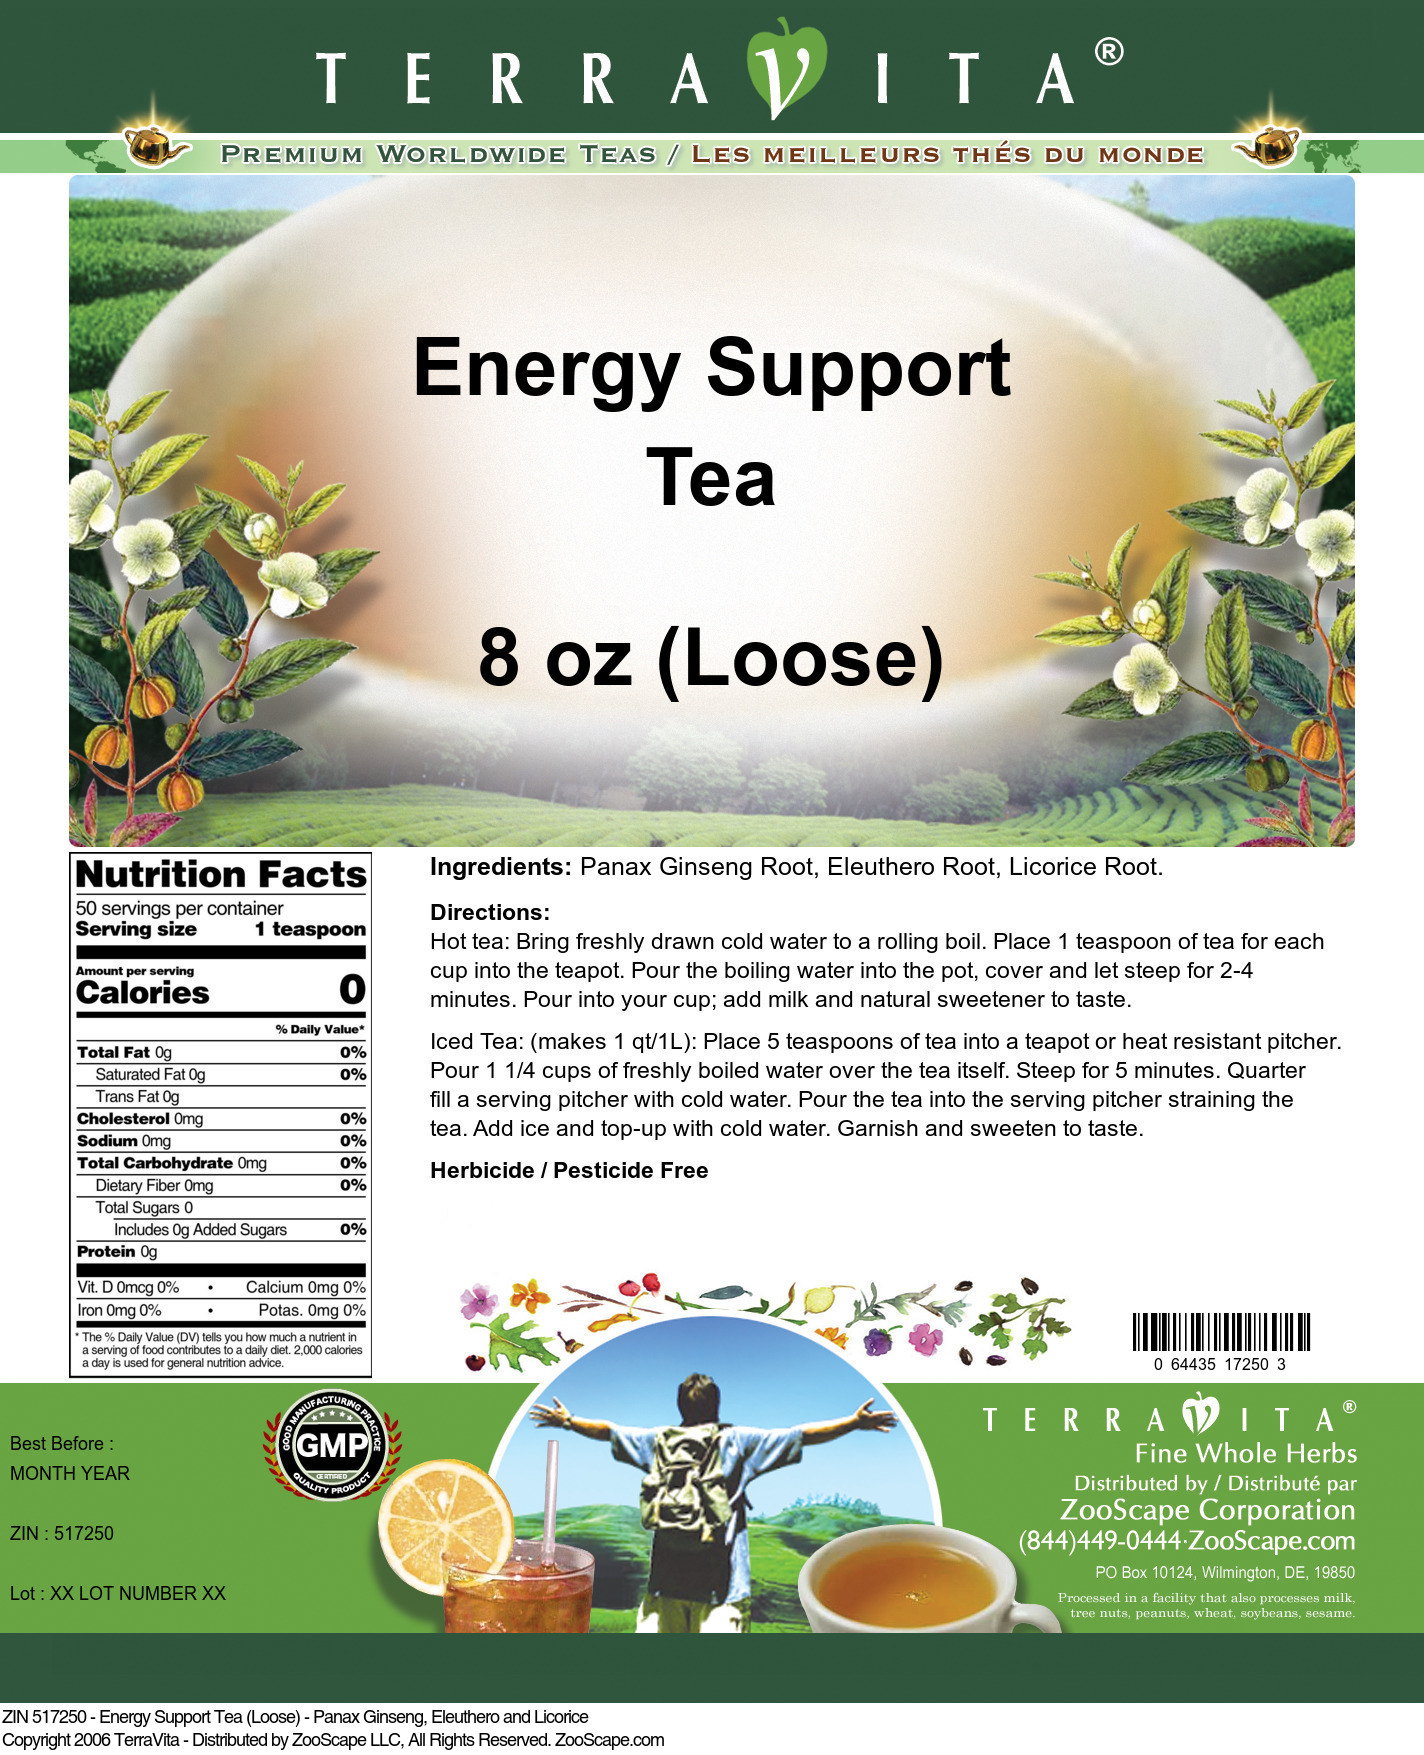 Energy Support Tea (Loose) - Panax Ginseng, Eleuthero and Licorice